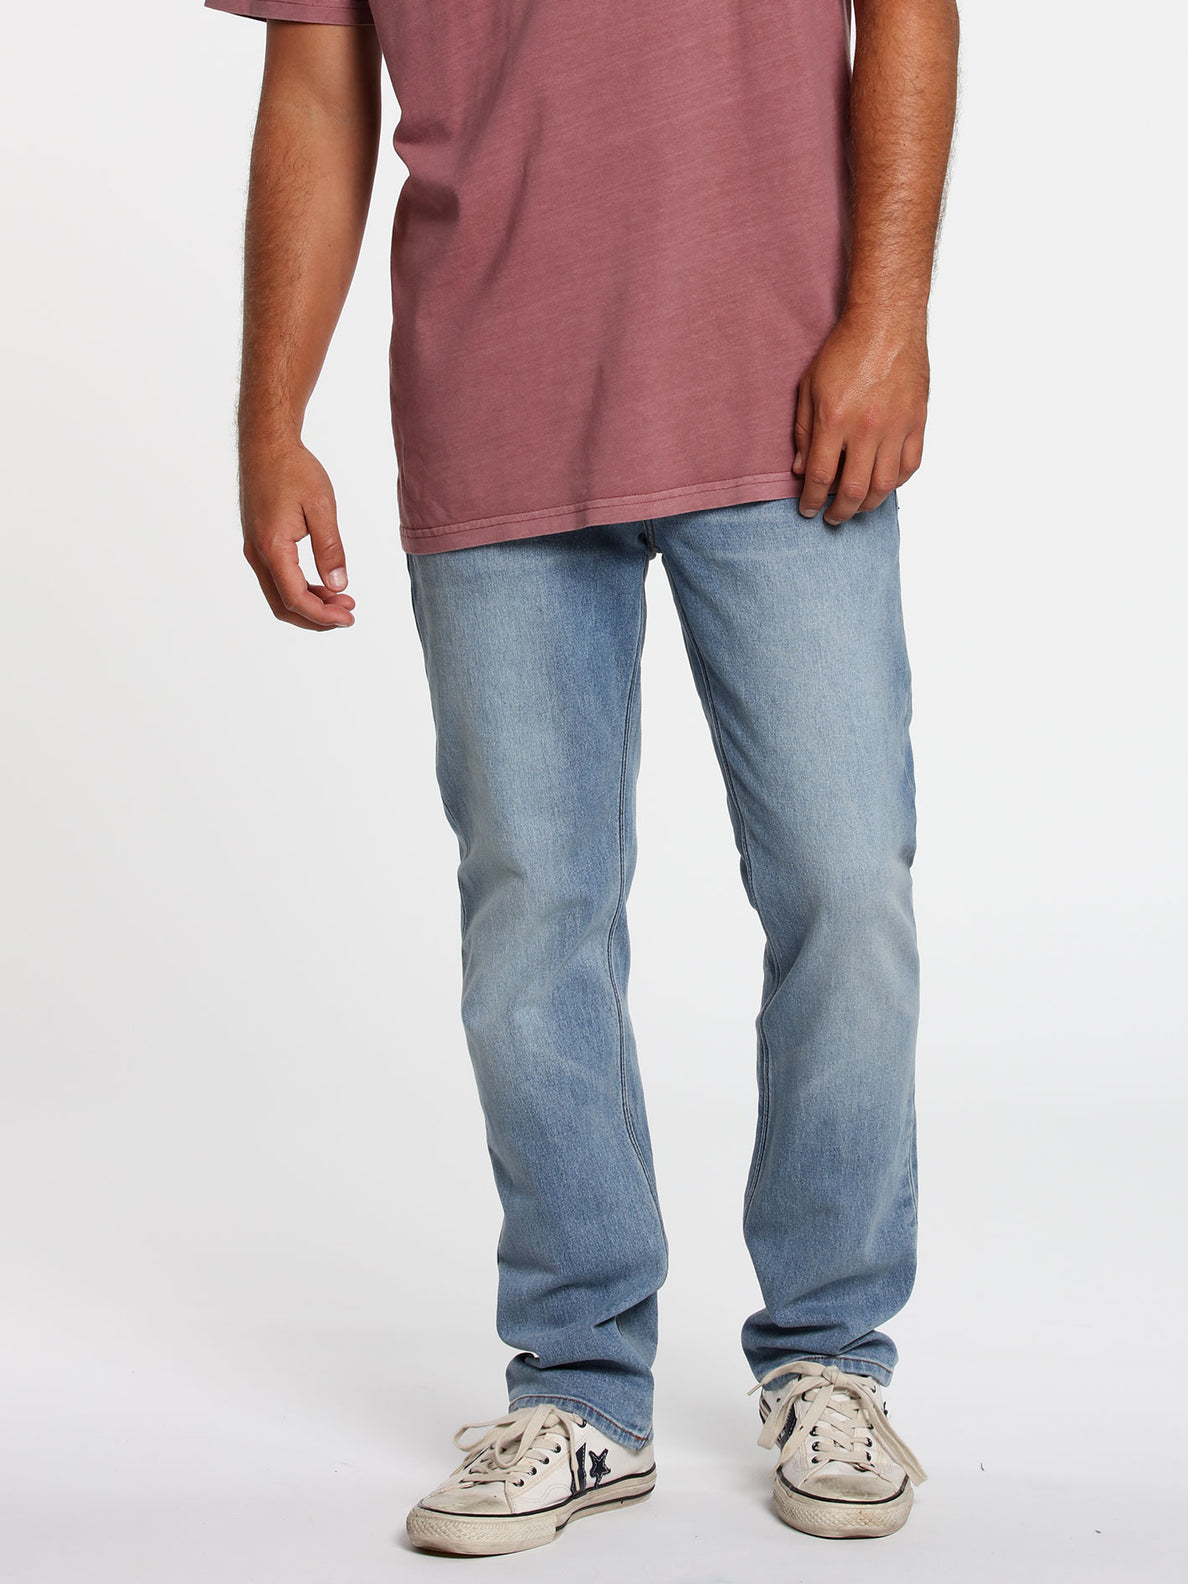 Solver Modern Fit Jeans - Light Wicked Blue (A1931503_LWB) [1]